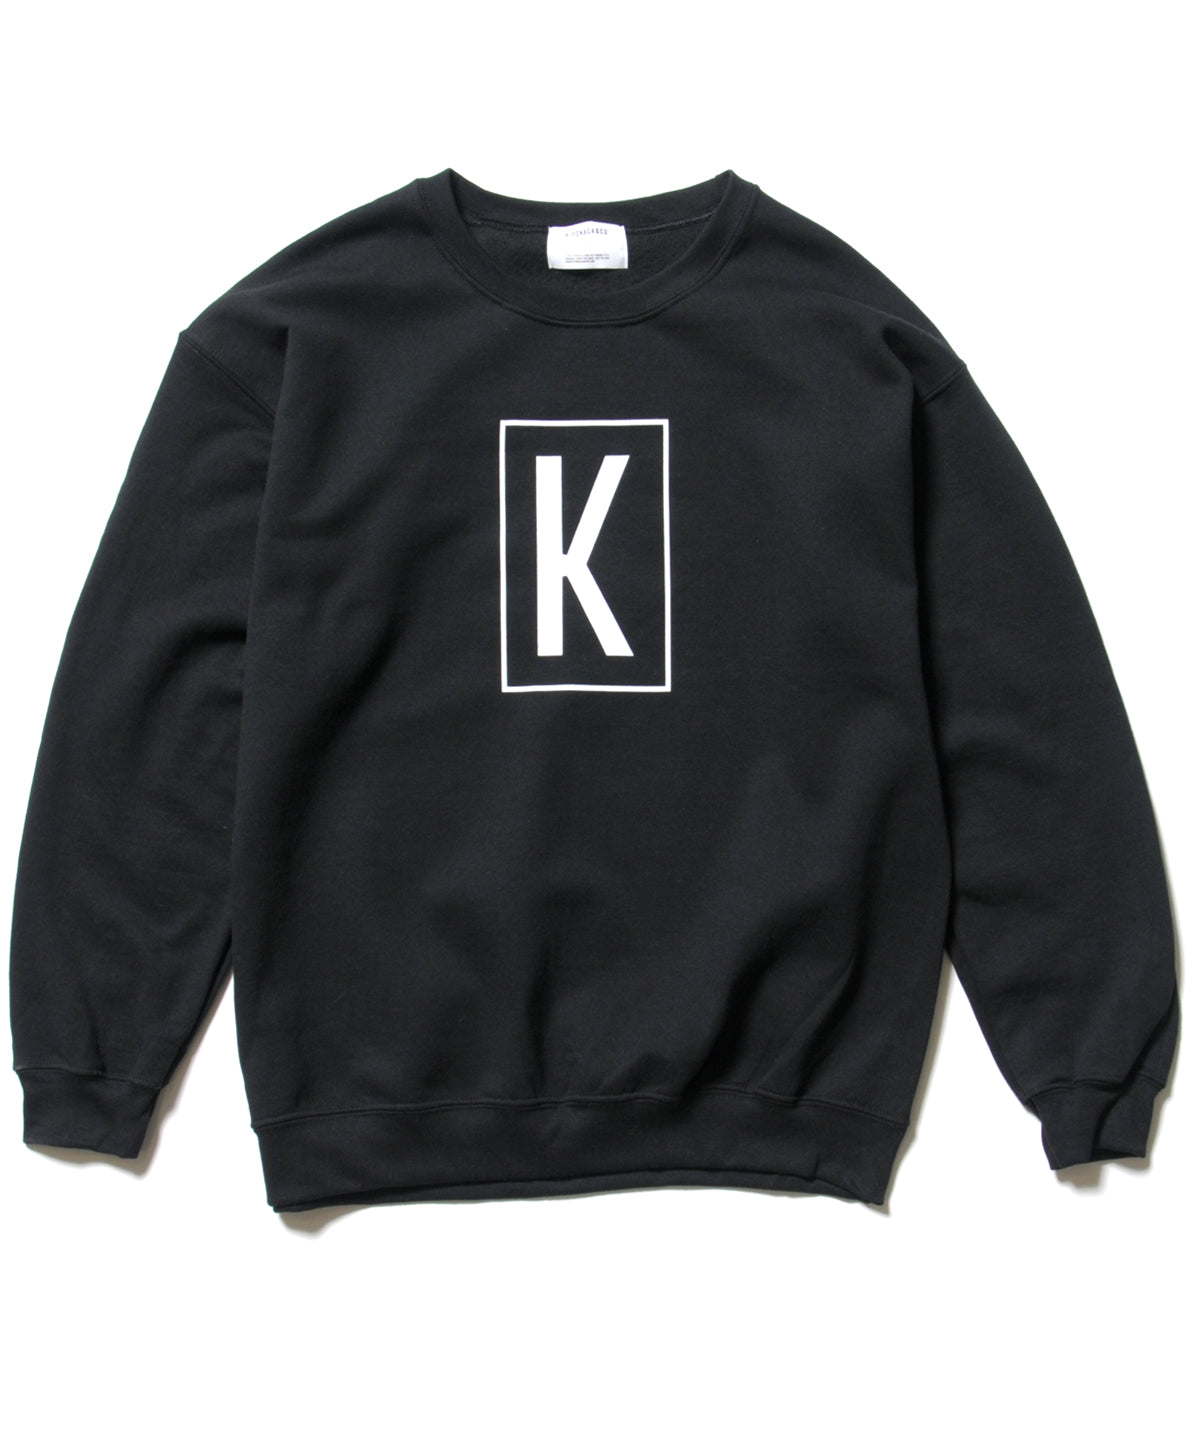 BOX K LOGO CREWNECK SWEAT